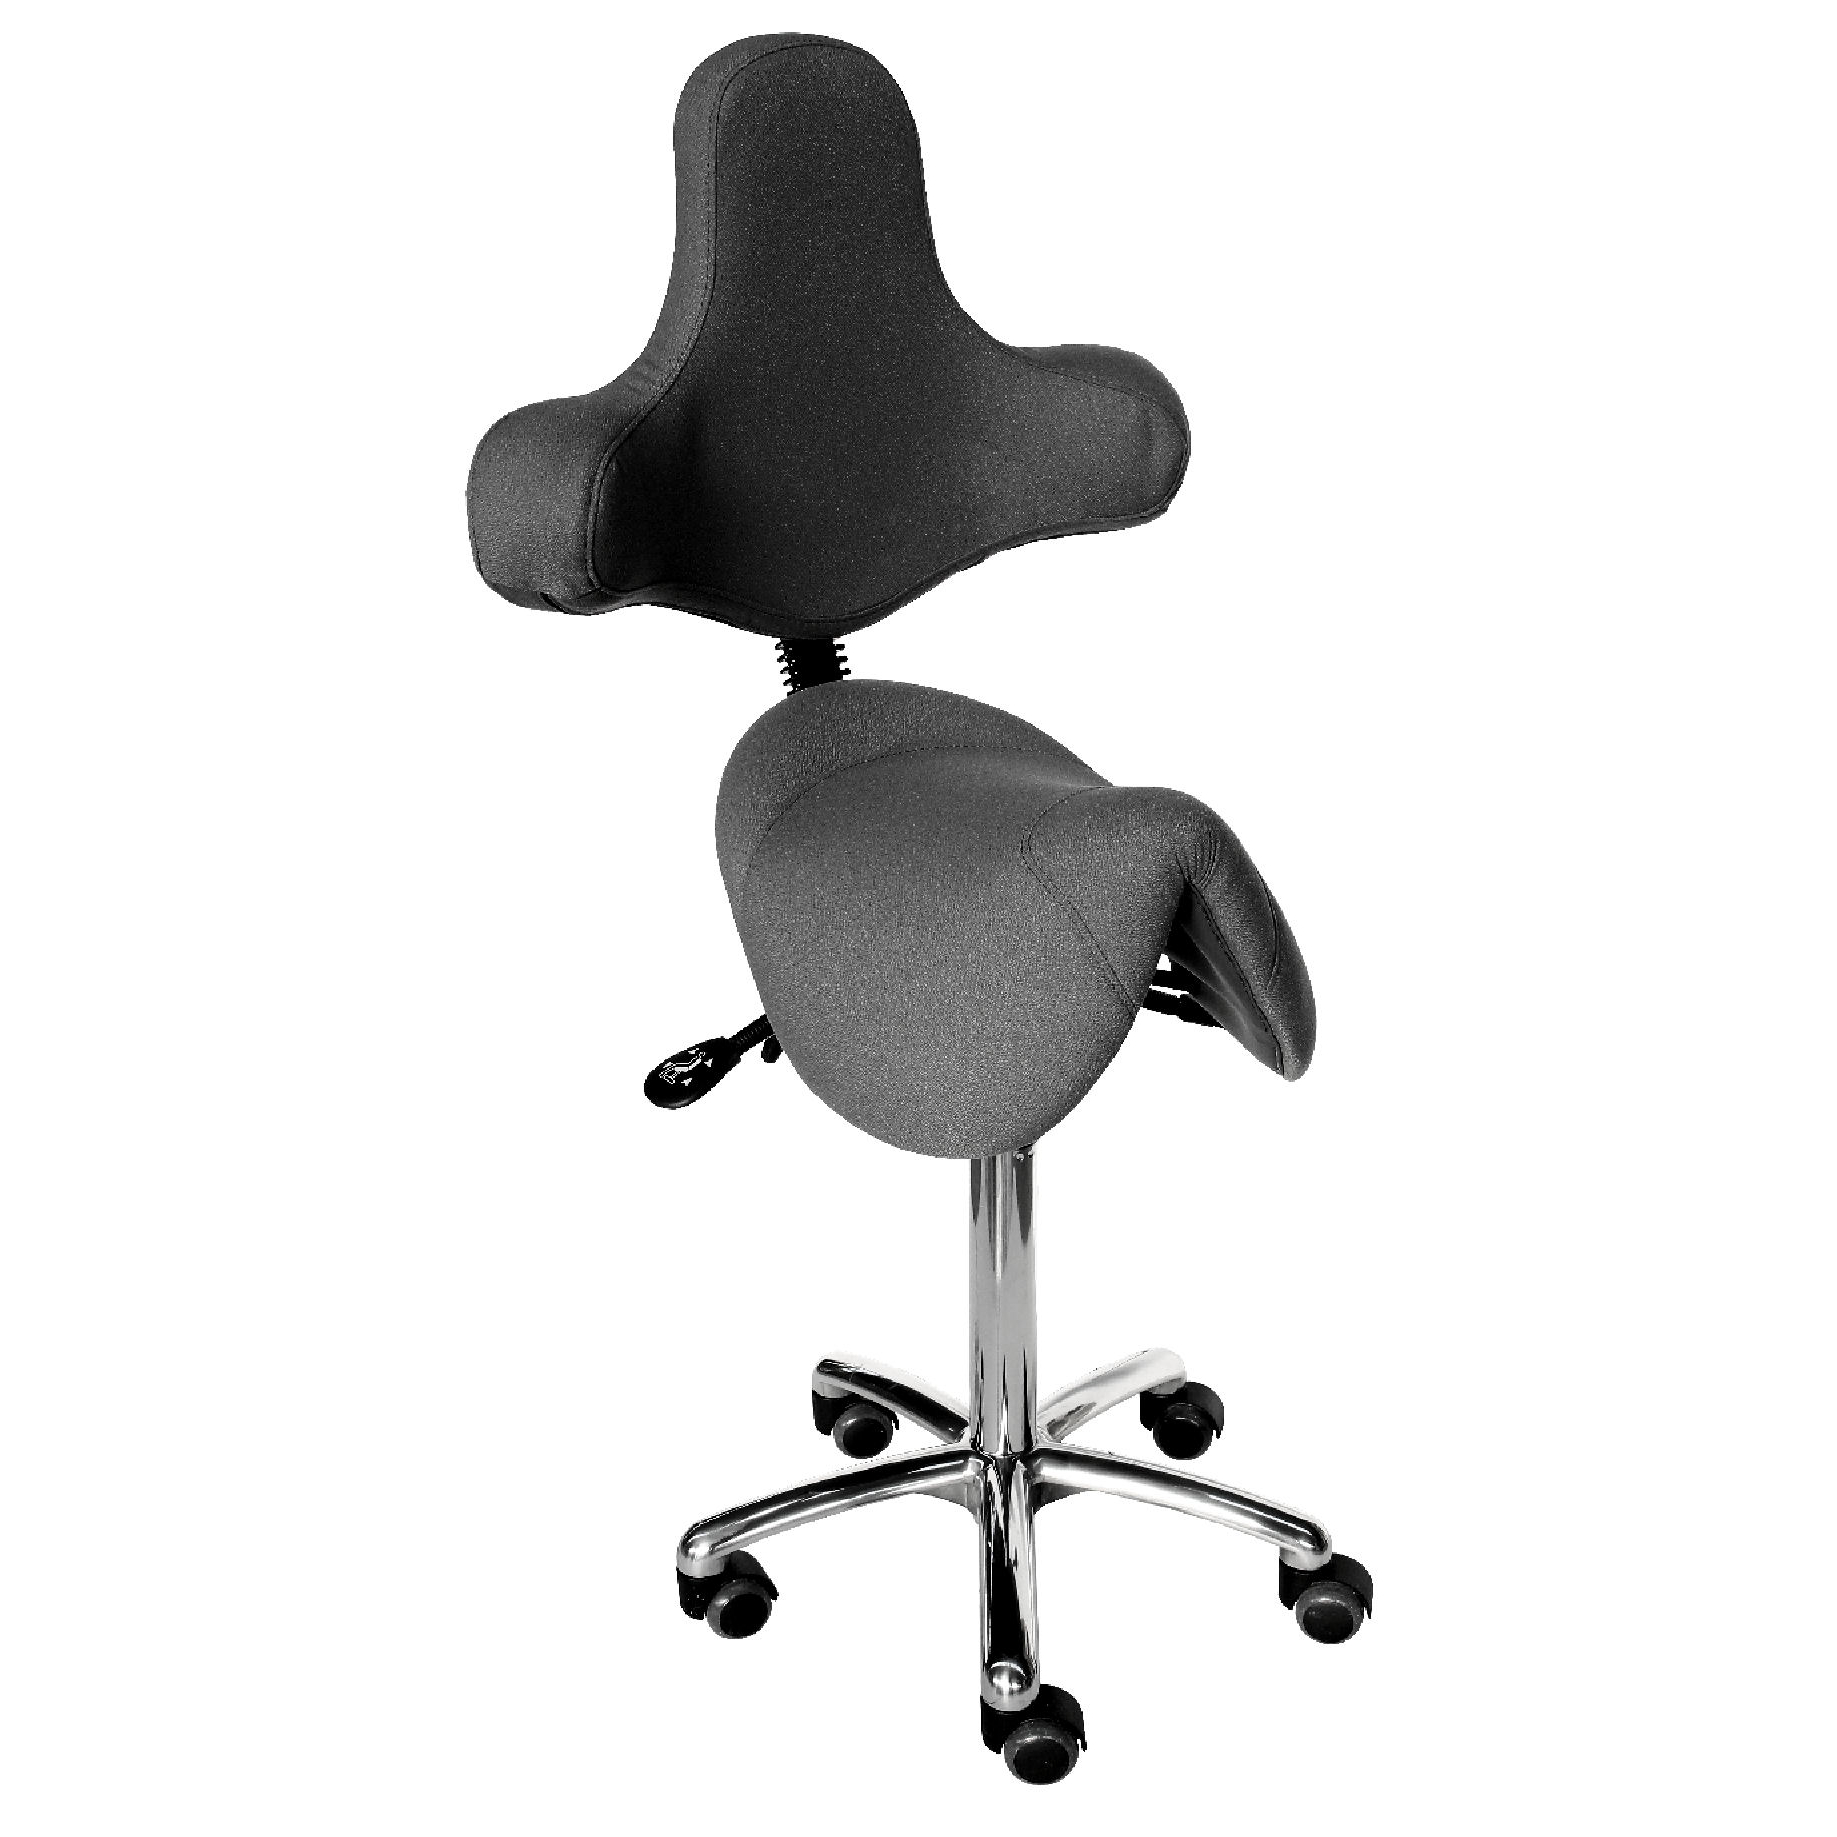 Le siège selle TEXAS asynchrone ergonomique grand confort est une innovation de siegepro.com avec sa selle large suspendue par ressorts et son dossier original avec accoudoirs intégrés